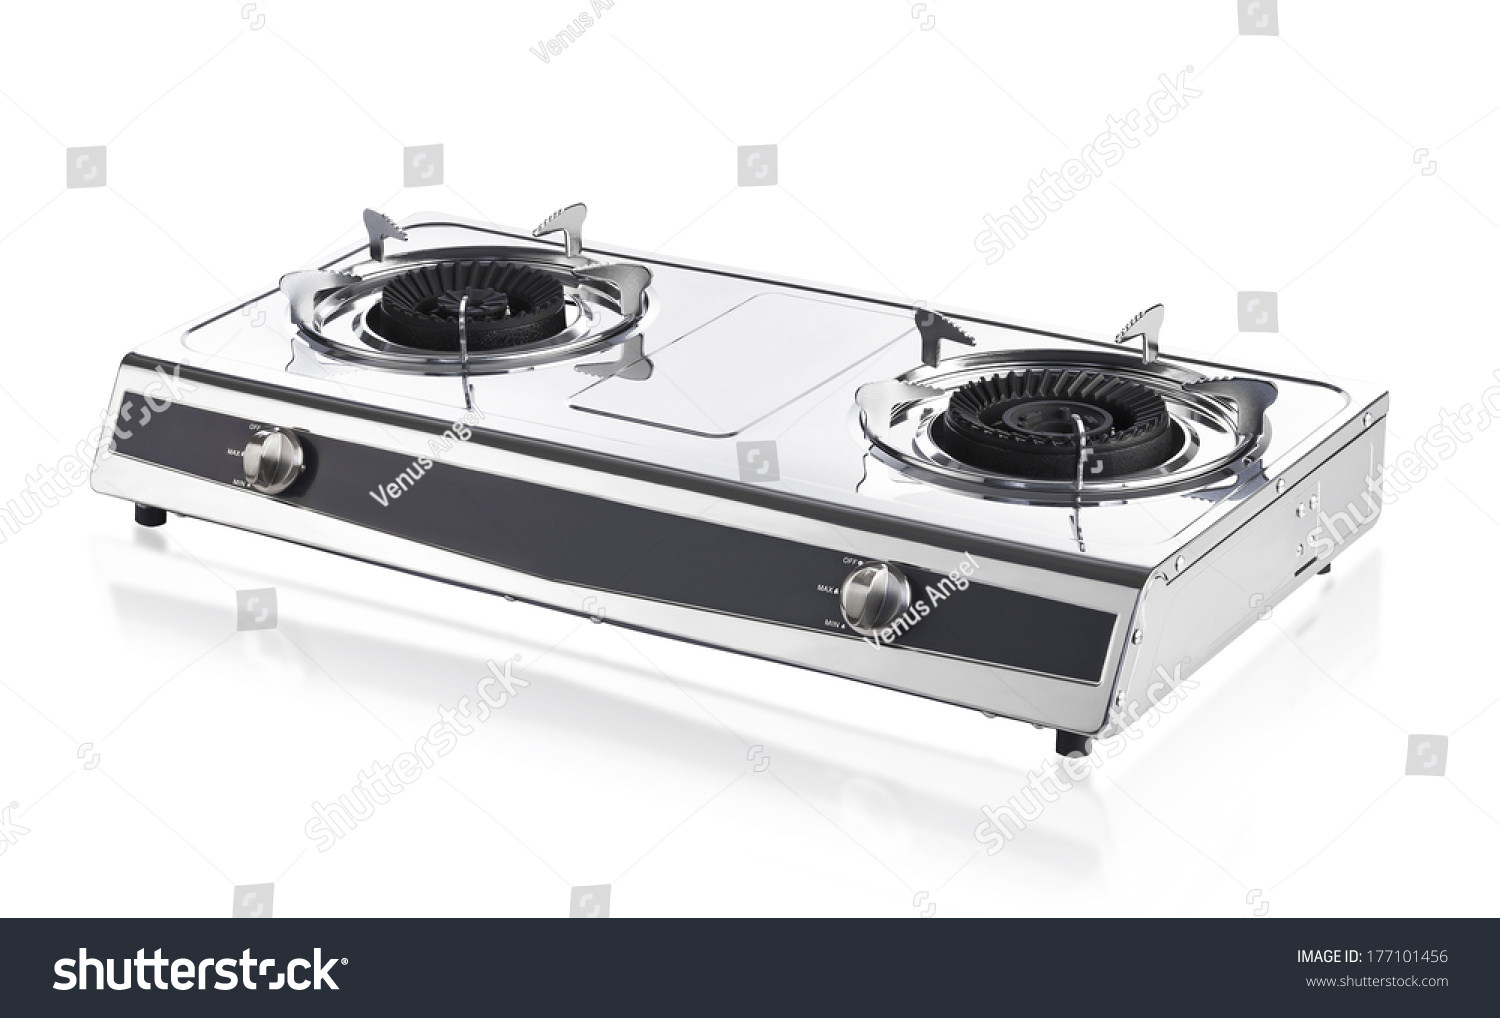 gas stove clipart black and white. gas stove clipart black and white s